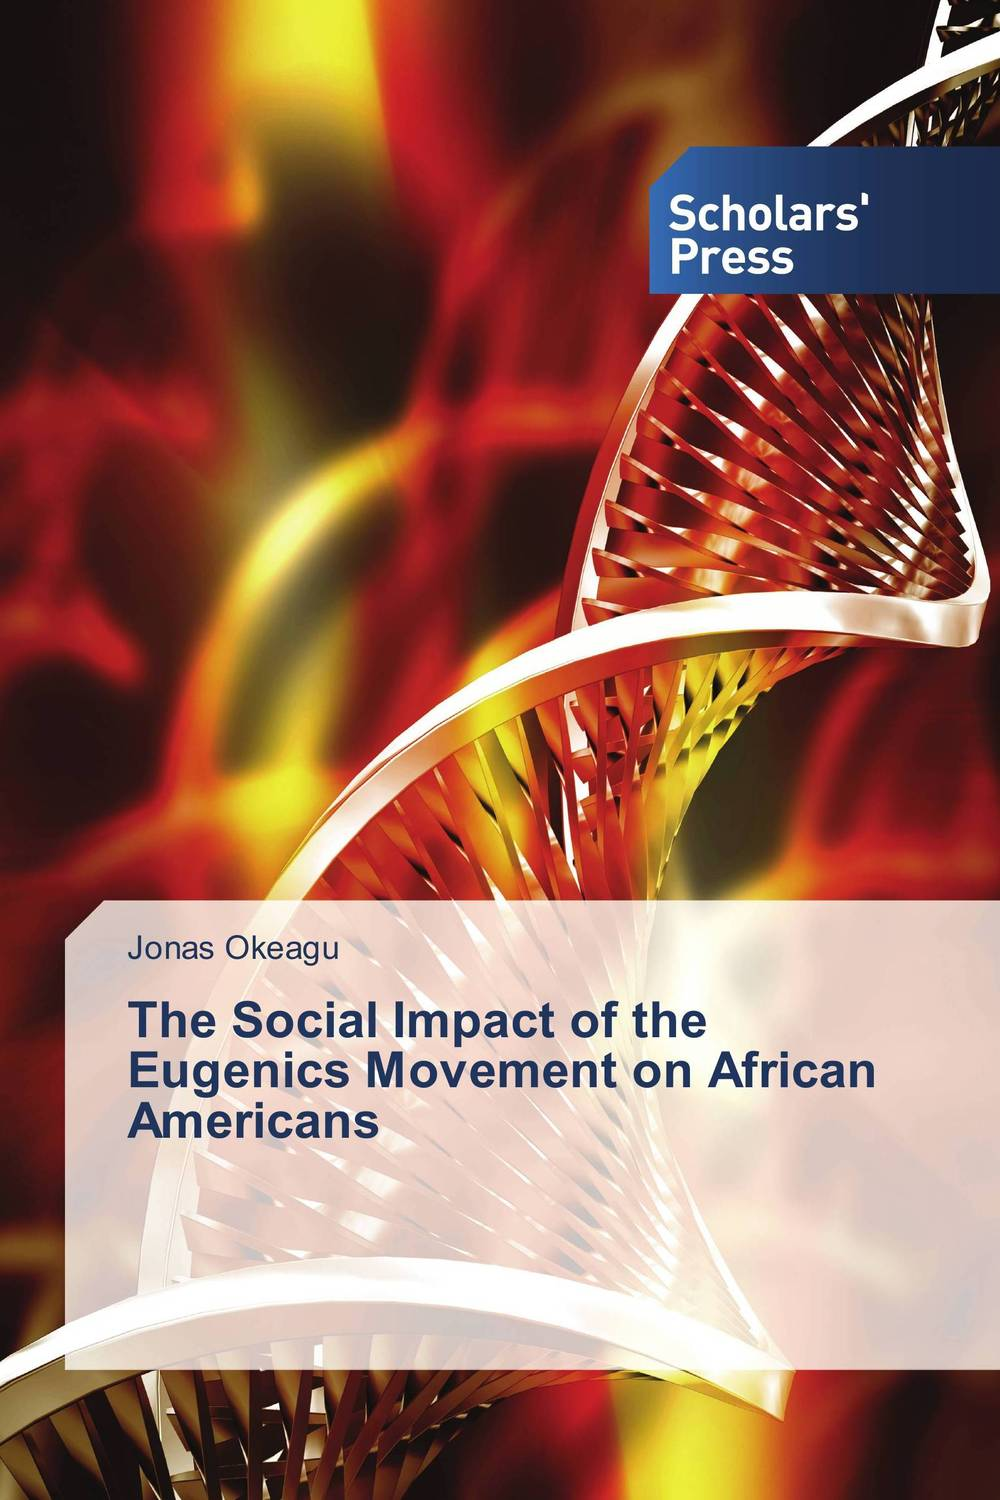 The Social Impact of the Eugenics Movement on African Americans